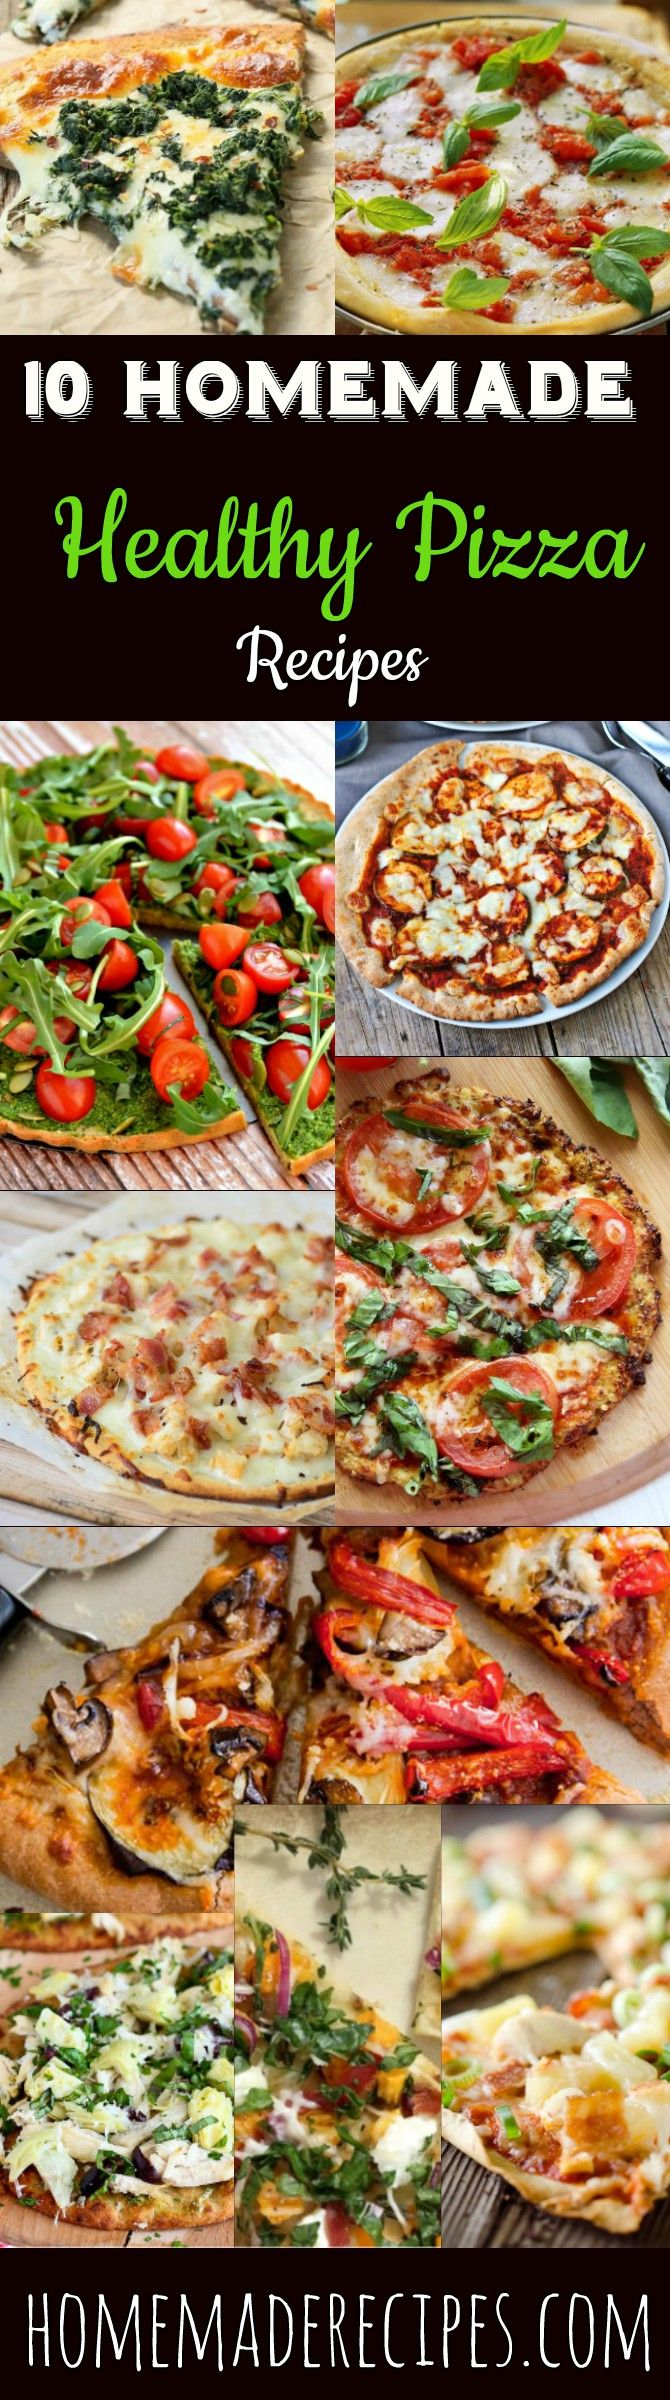 10 Homemade Healthy Pizza Recipes | Go Healthier And  Don't Sacrifice The Taste, With These Gluten Free And Delicious Pizza Recipes That Has All The Flavor Your Looking For! by Homemade Recipes at  http://homemaderecipes.com/healthy-pizza-recipes/